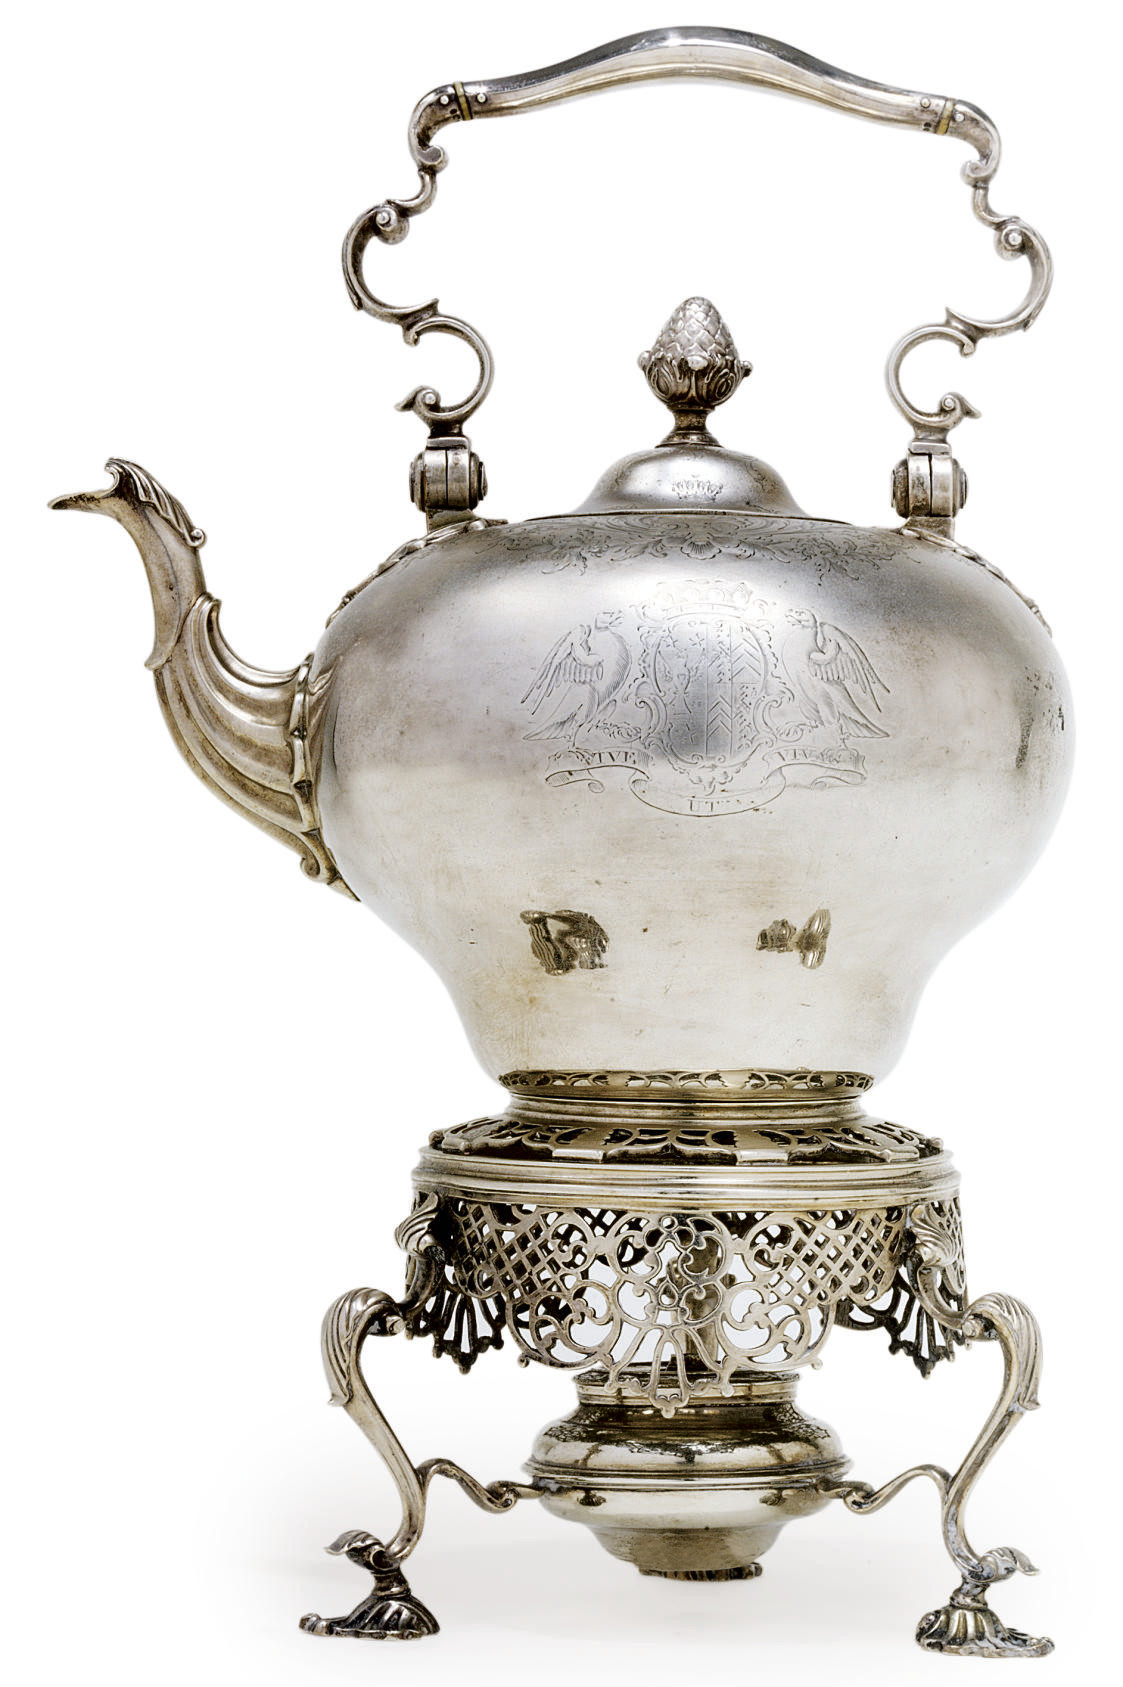 A GEORGE II SILVER TEA KETTLE-